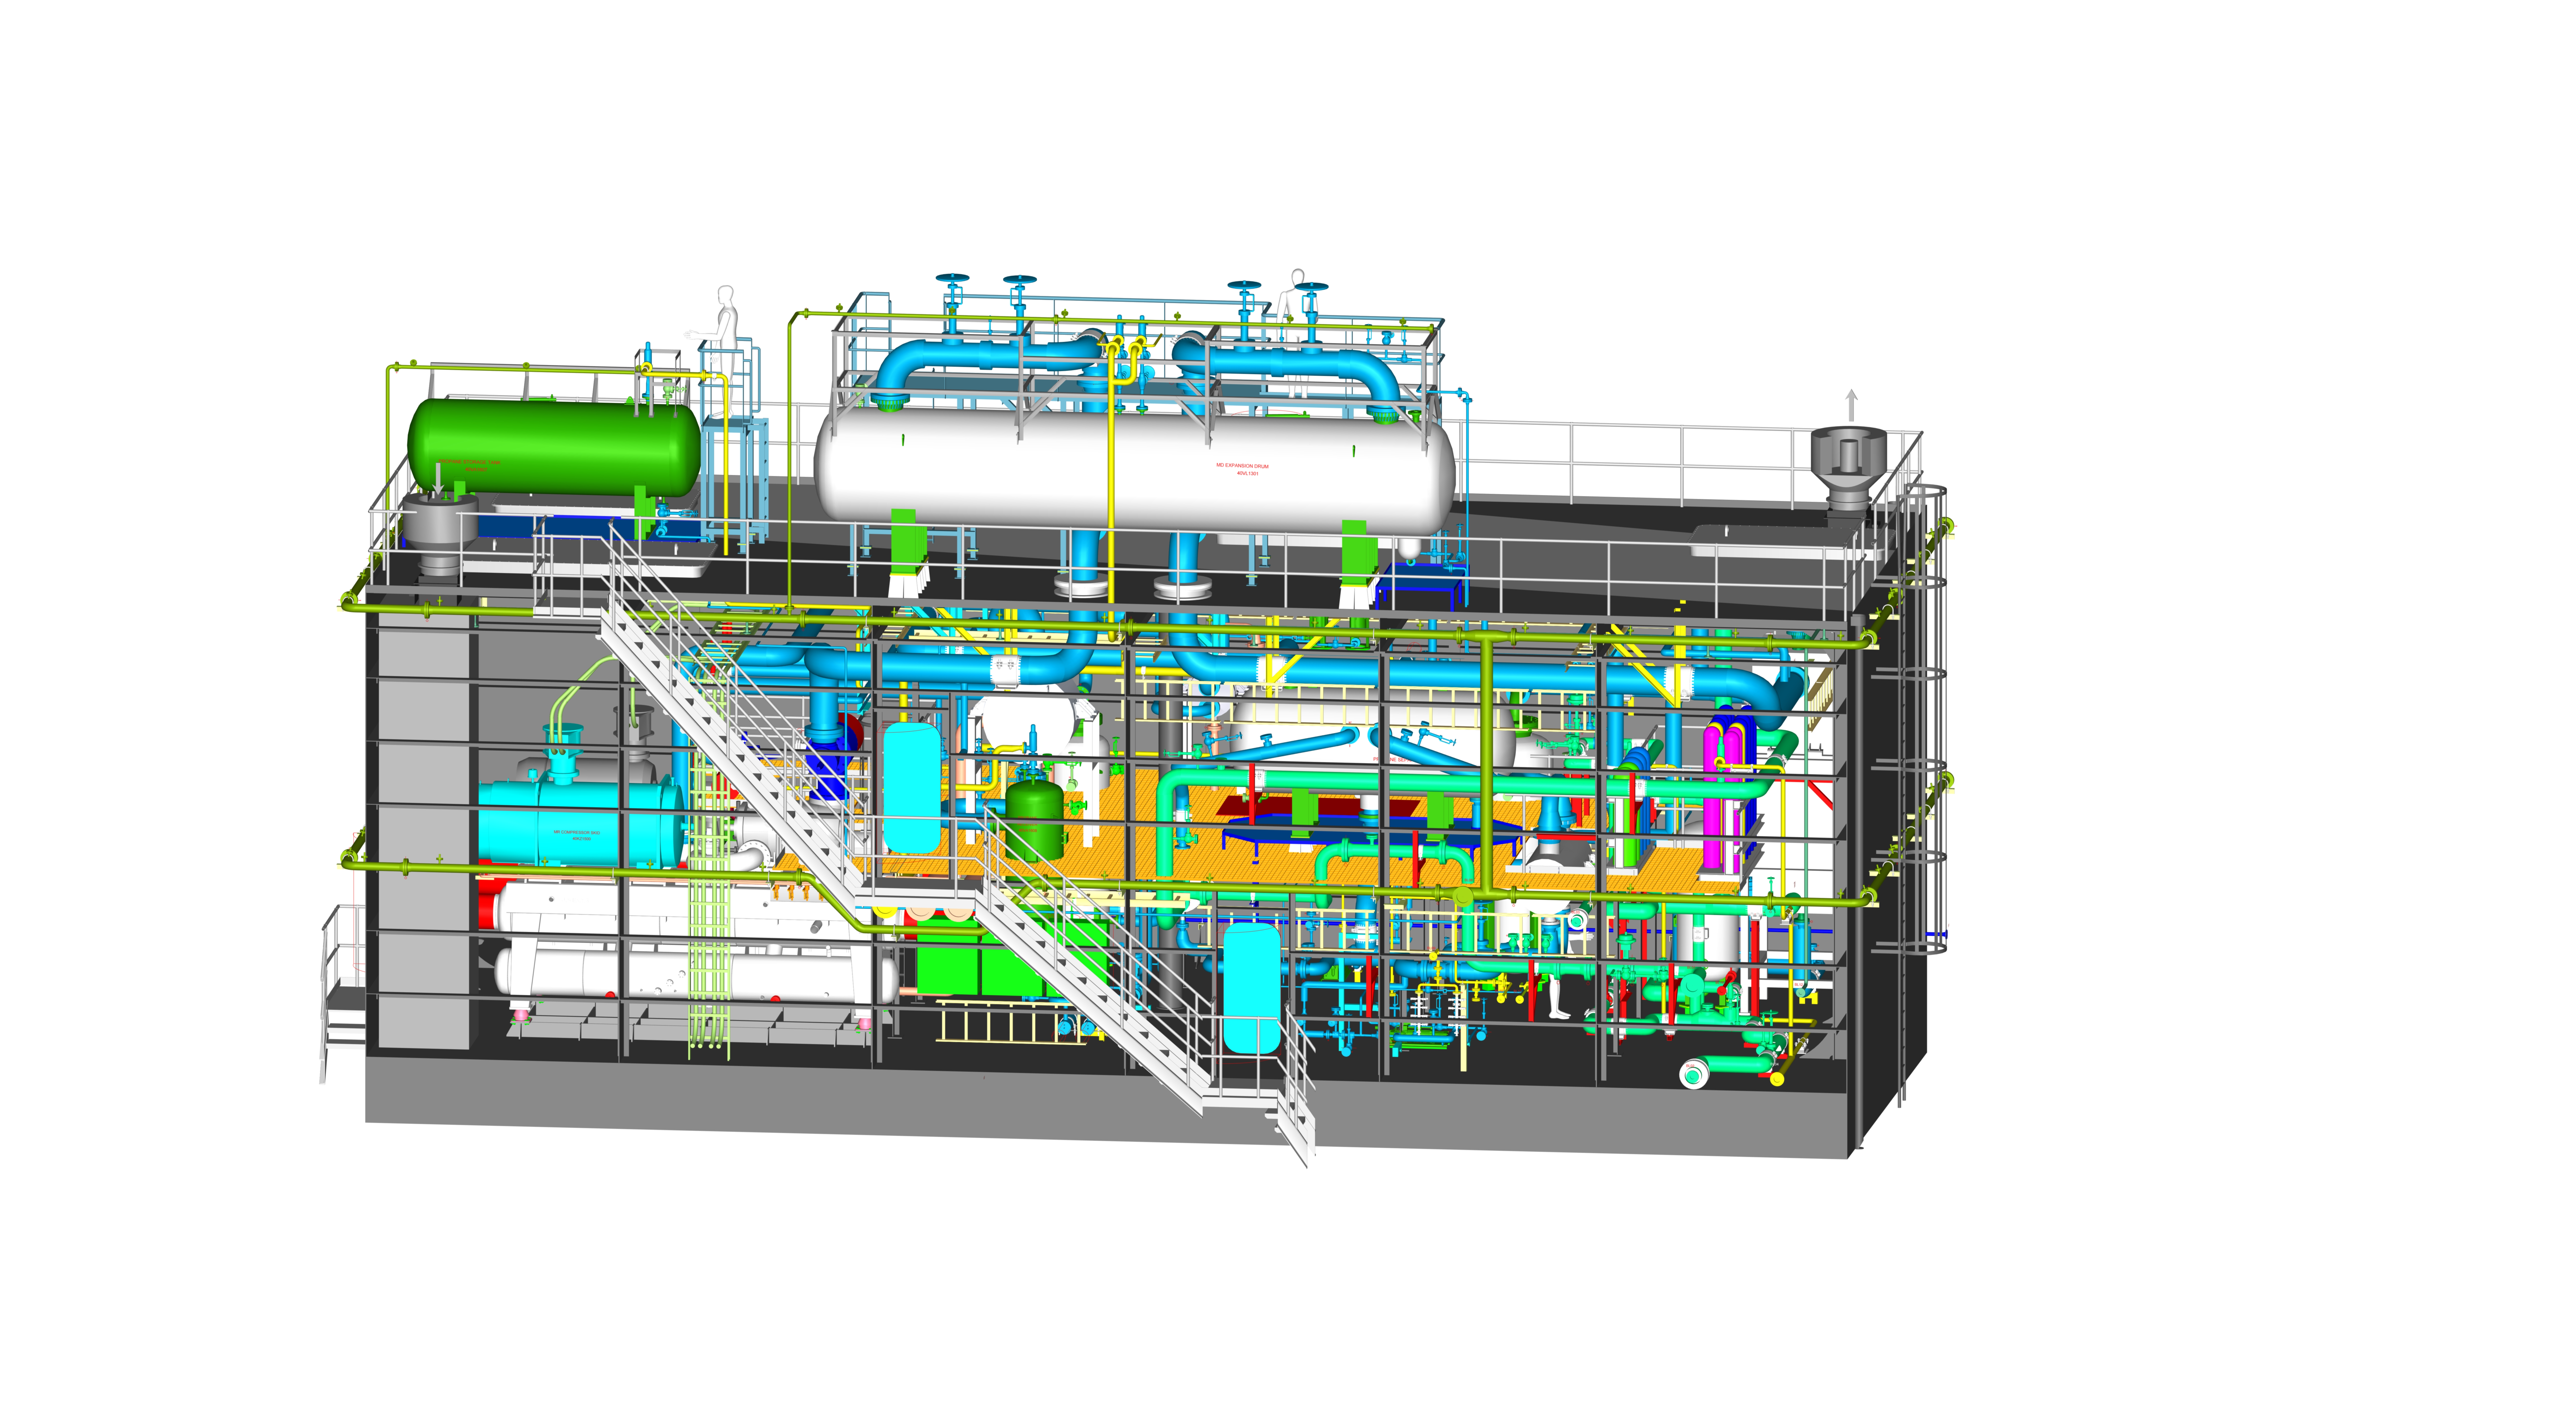 Wärtsilä re liquefaction plants again the choice for LNG Carriers